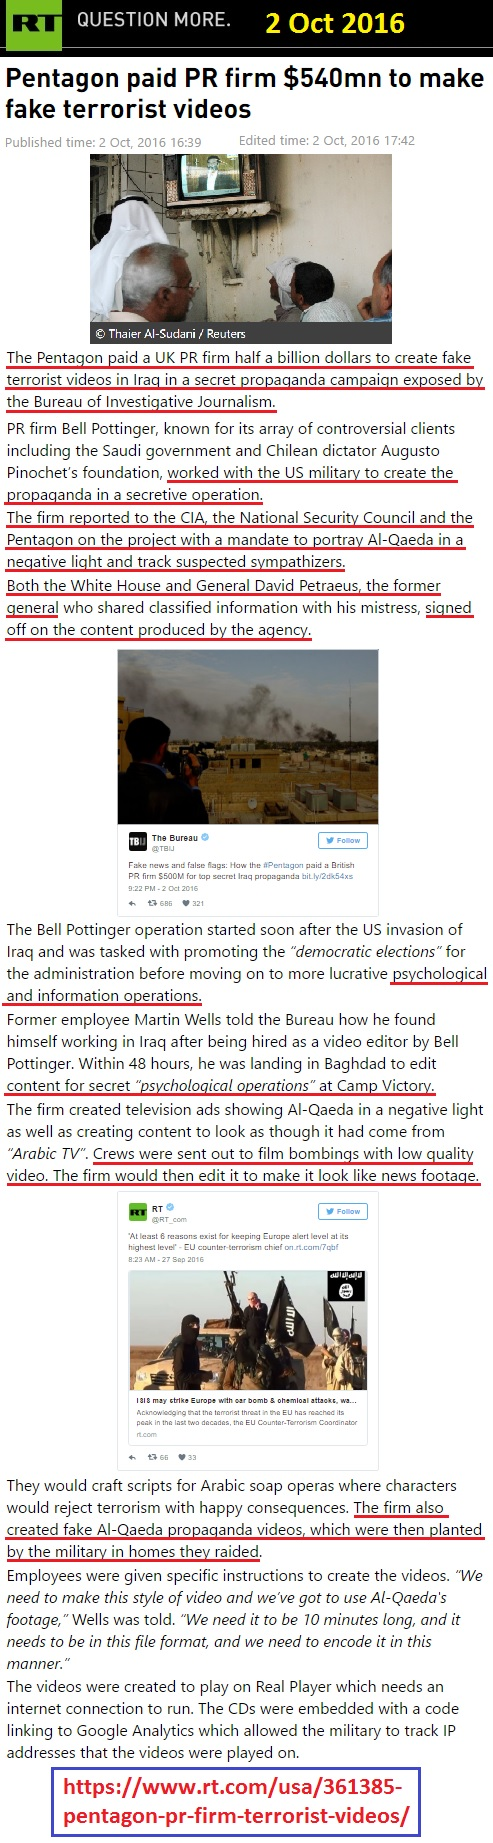 https://www.rt.com/usa/361385-pentagon-pr-firm-terrorist-videos/